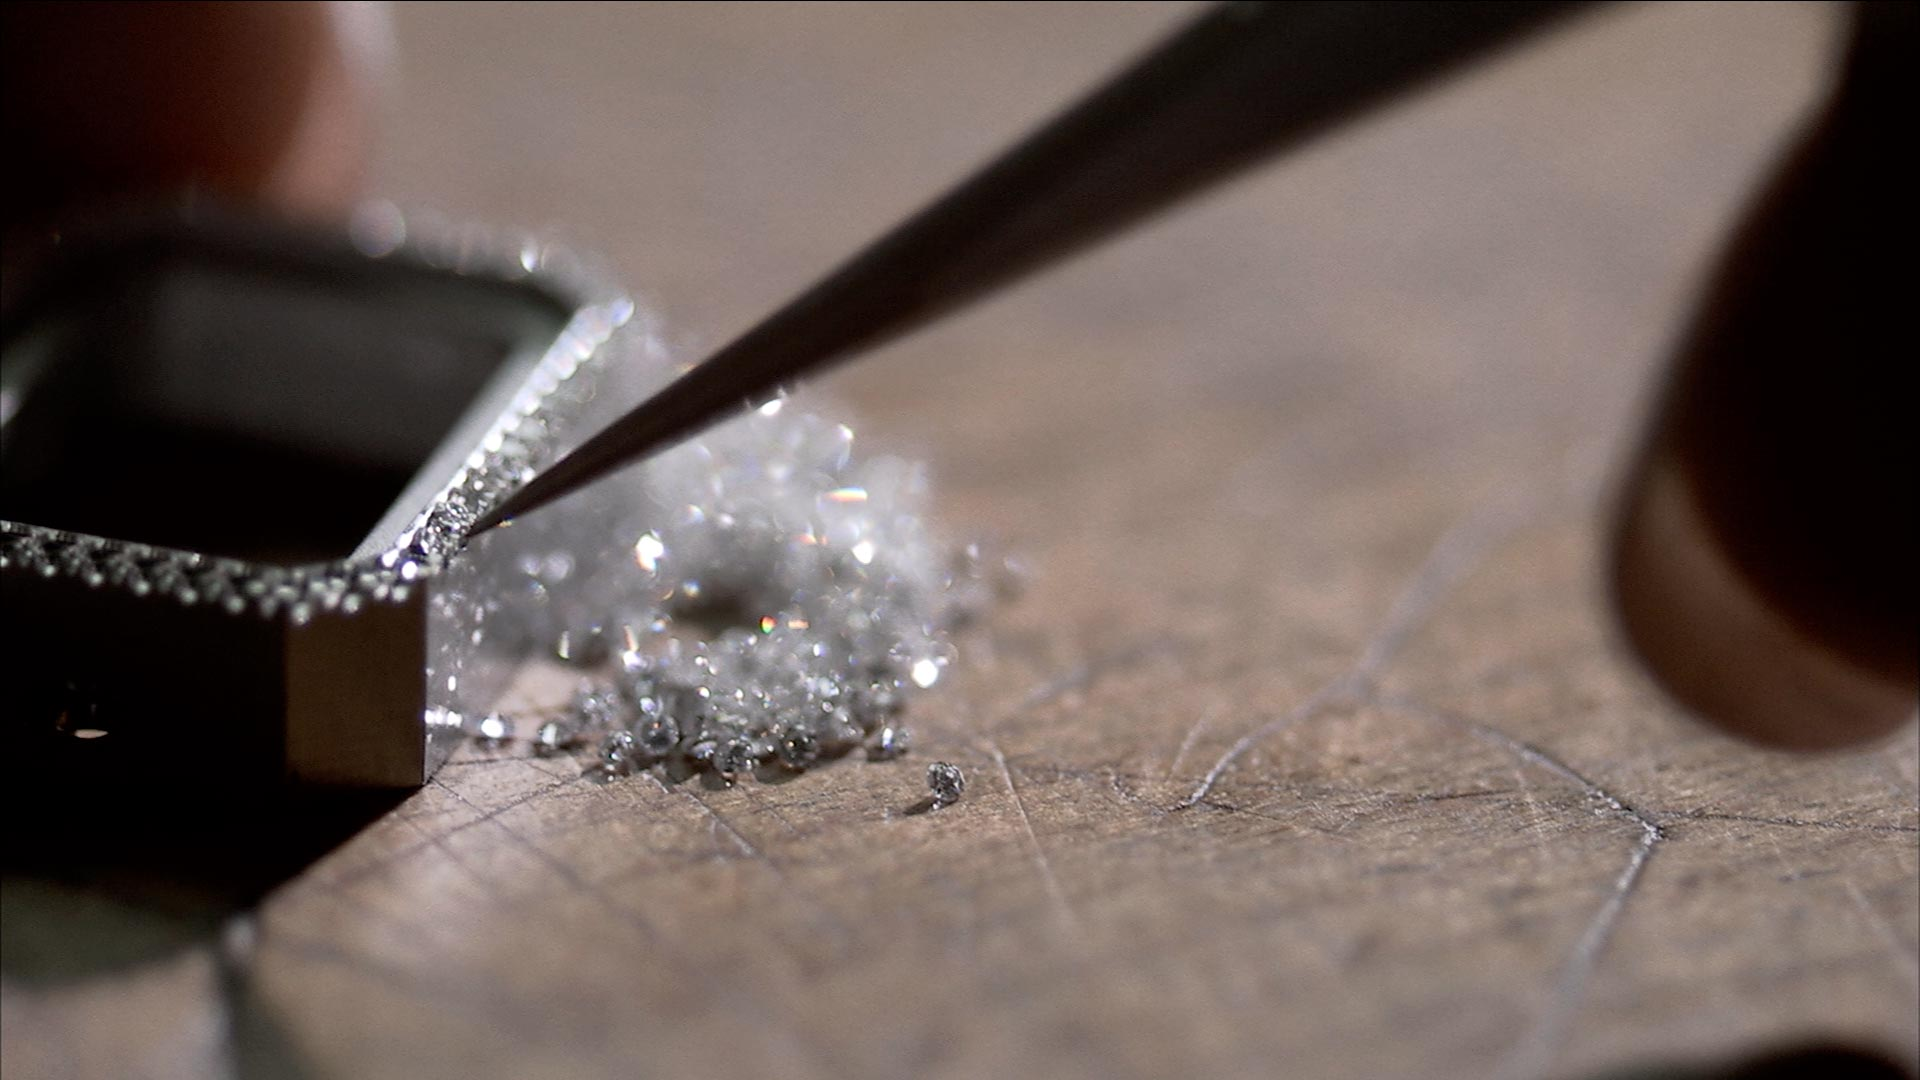 SEE THE FILM The jeweller's precision